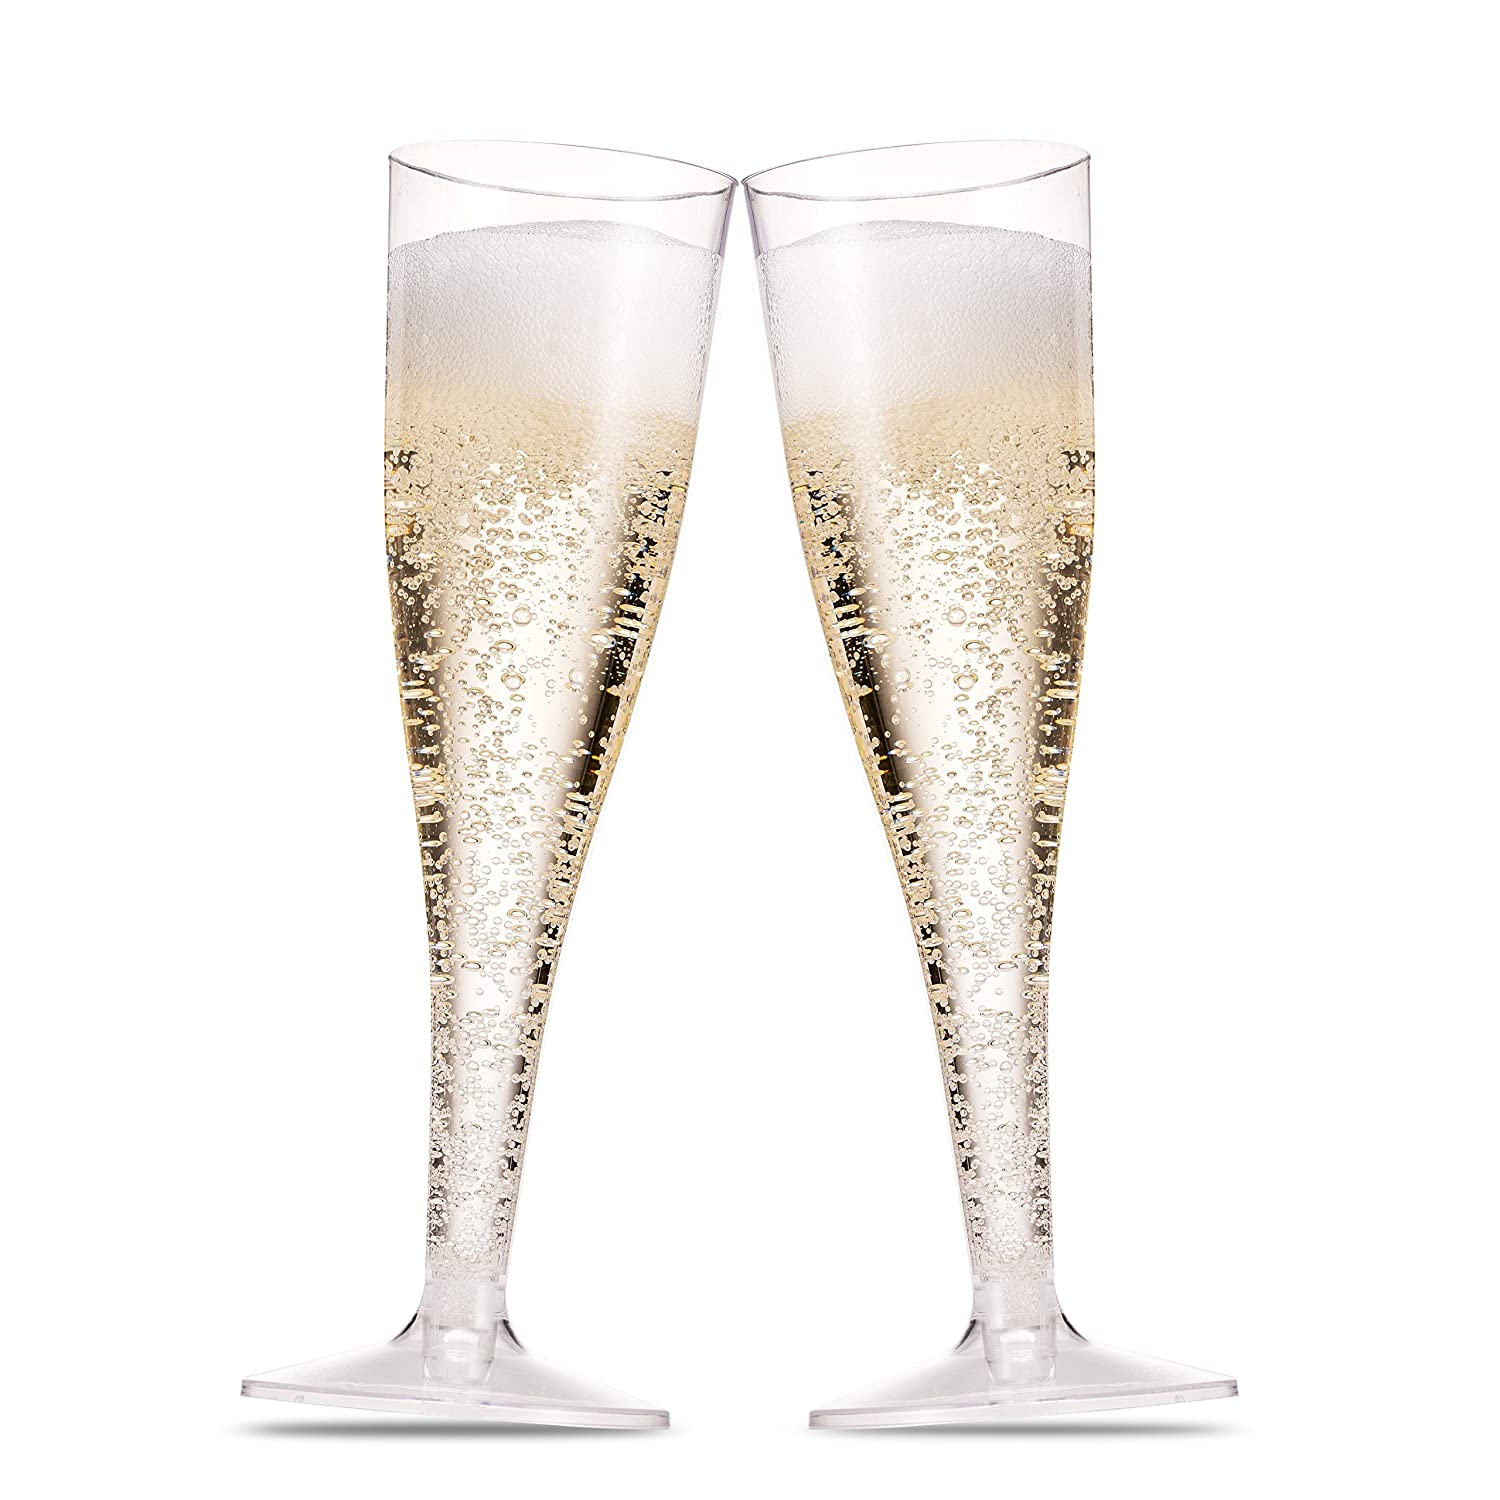 100 Plastic Champagne Flutes ~ 5 Oz Clear Plastic Toasting Glasses ~ Disposable Wedding Party Cocktail Cups Munfix MF5100C